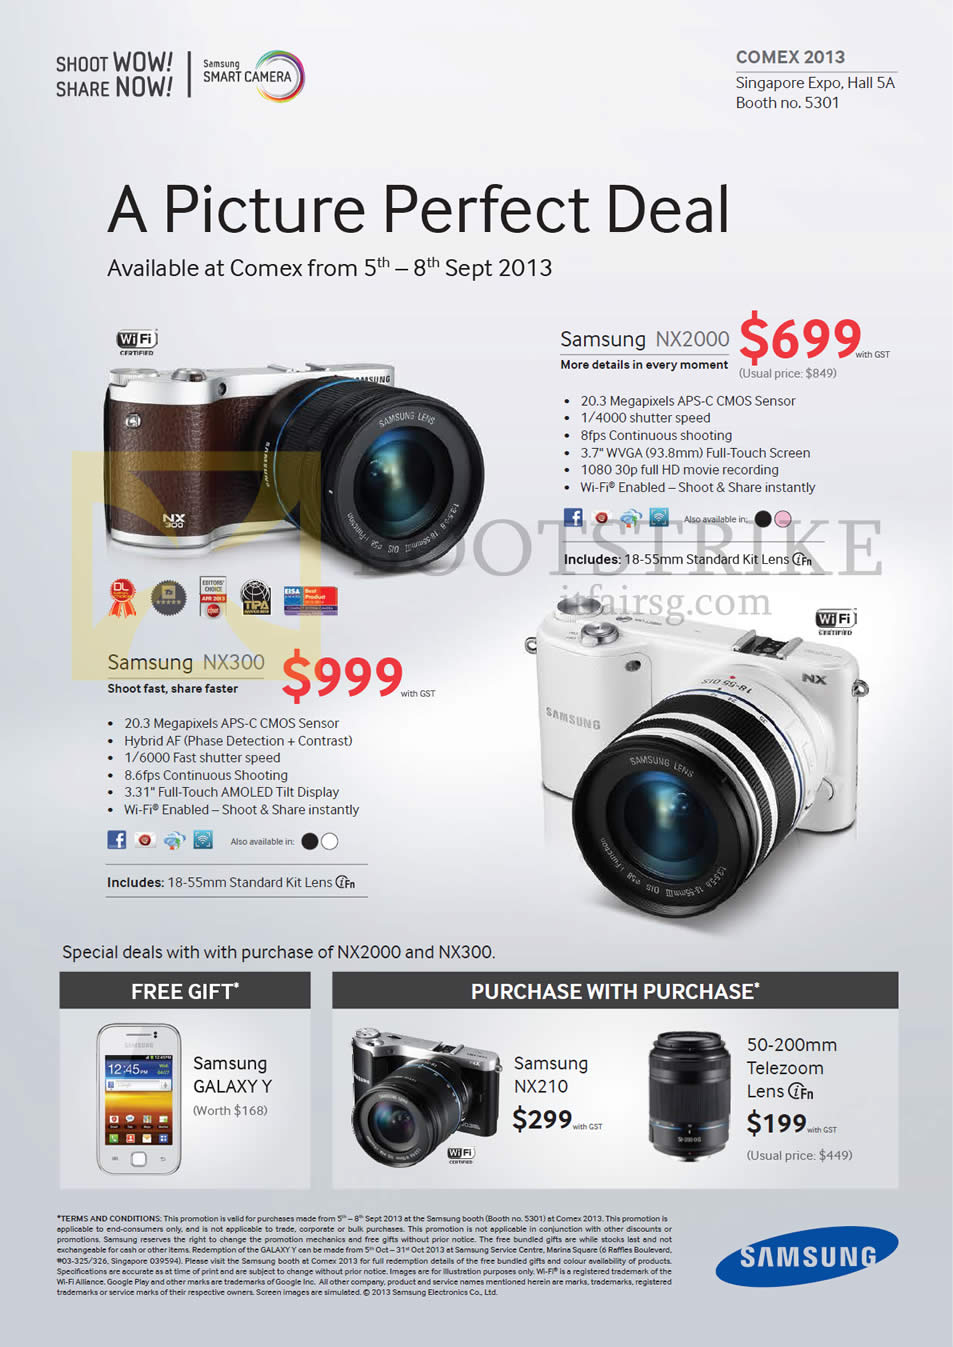 COMEX 2013 price list image brochure of Samsung Digital Cameras NX2000, NX300, Purchase With Purchase